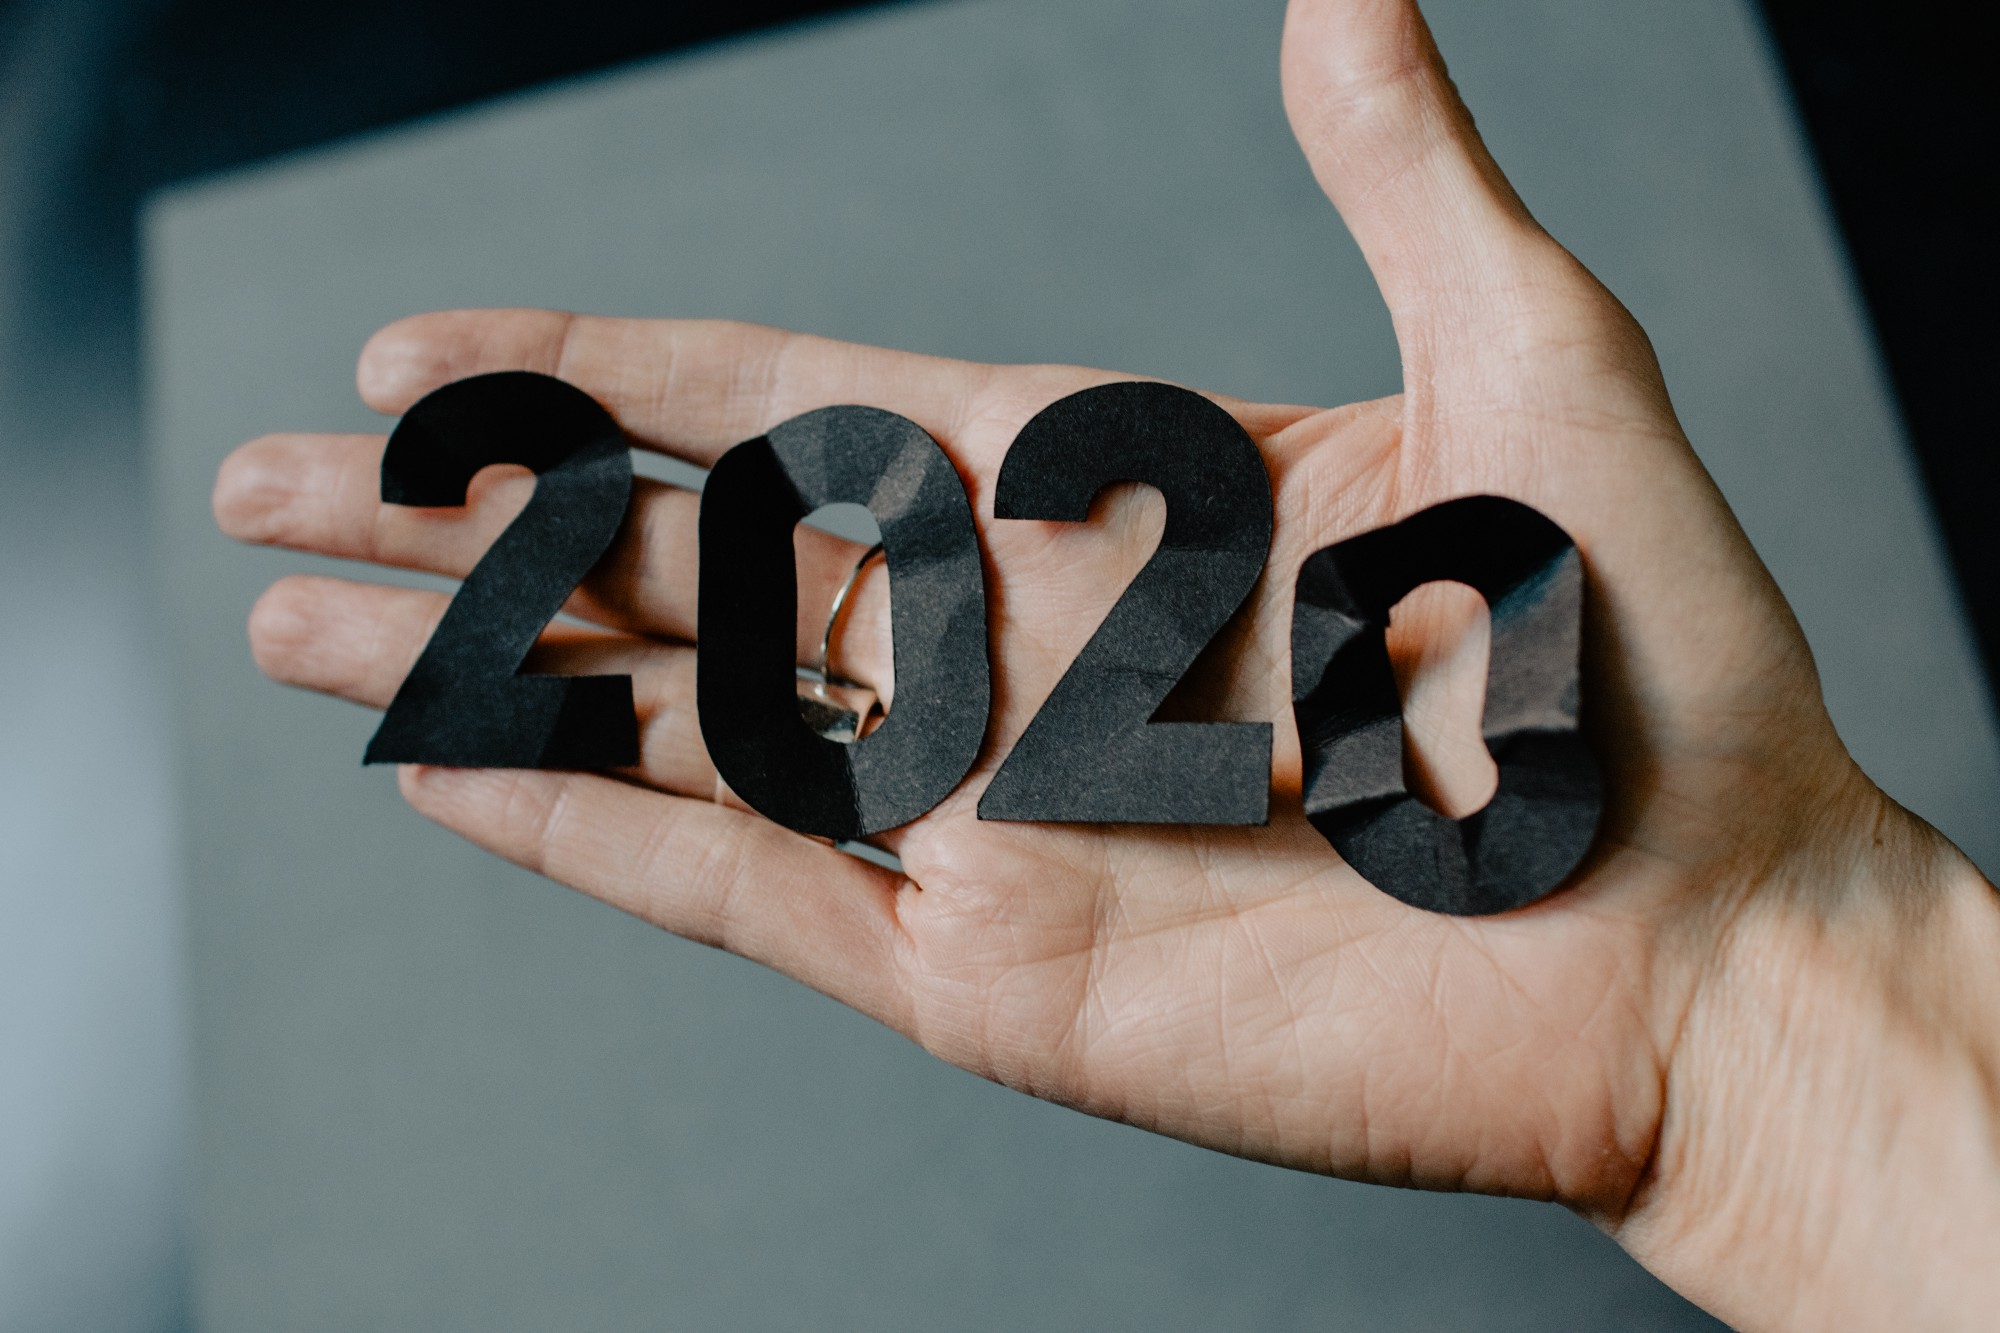 Paper cutout of 2020 in person's hand